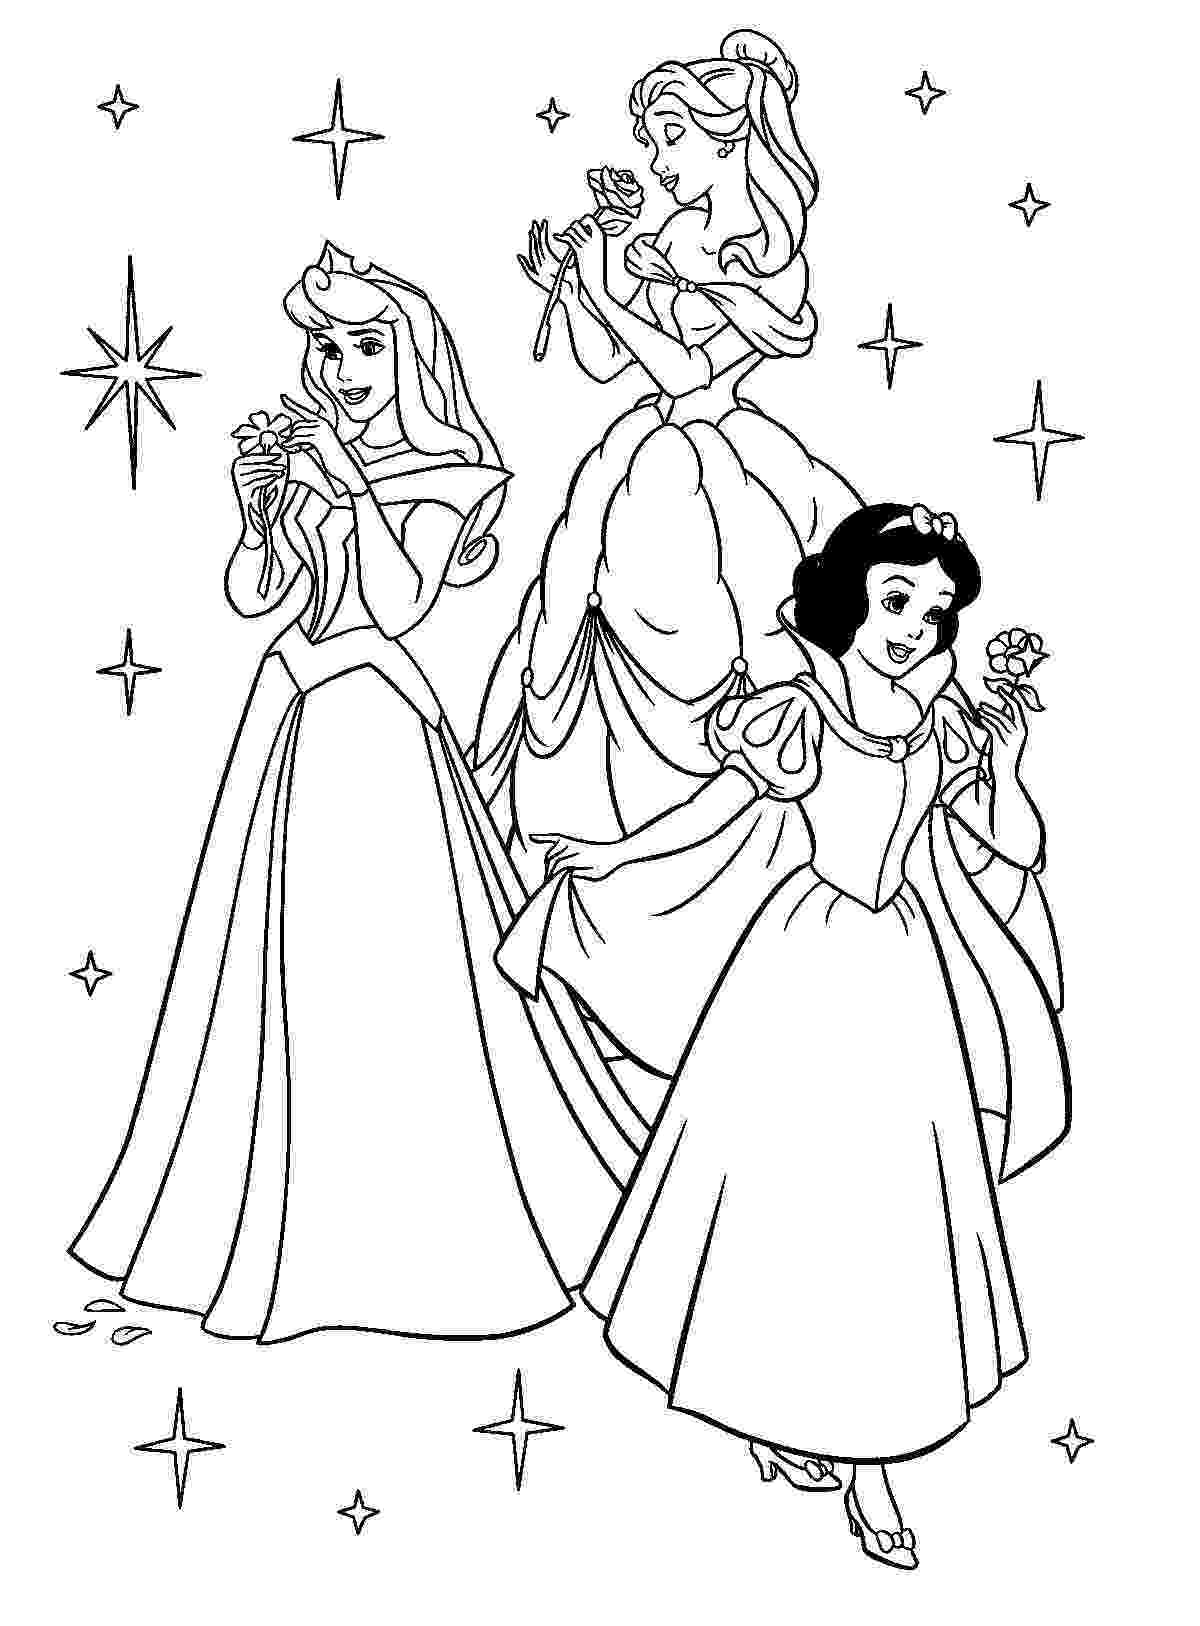 printable coloring pages for disney princess all disney princesses coloring pages getcoloringpagescom printable pages disney coloring princess for